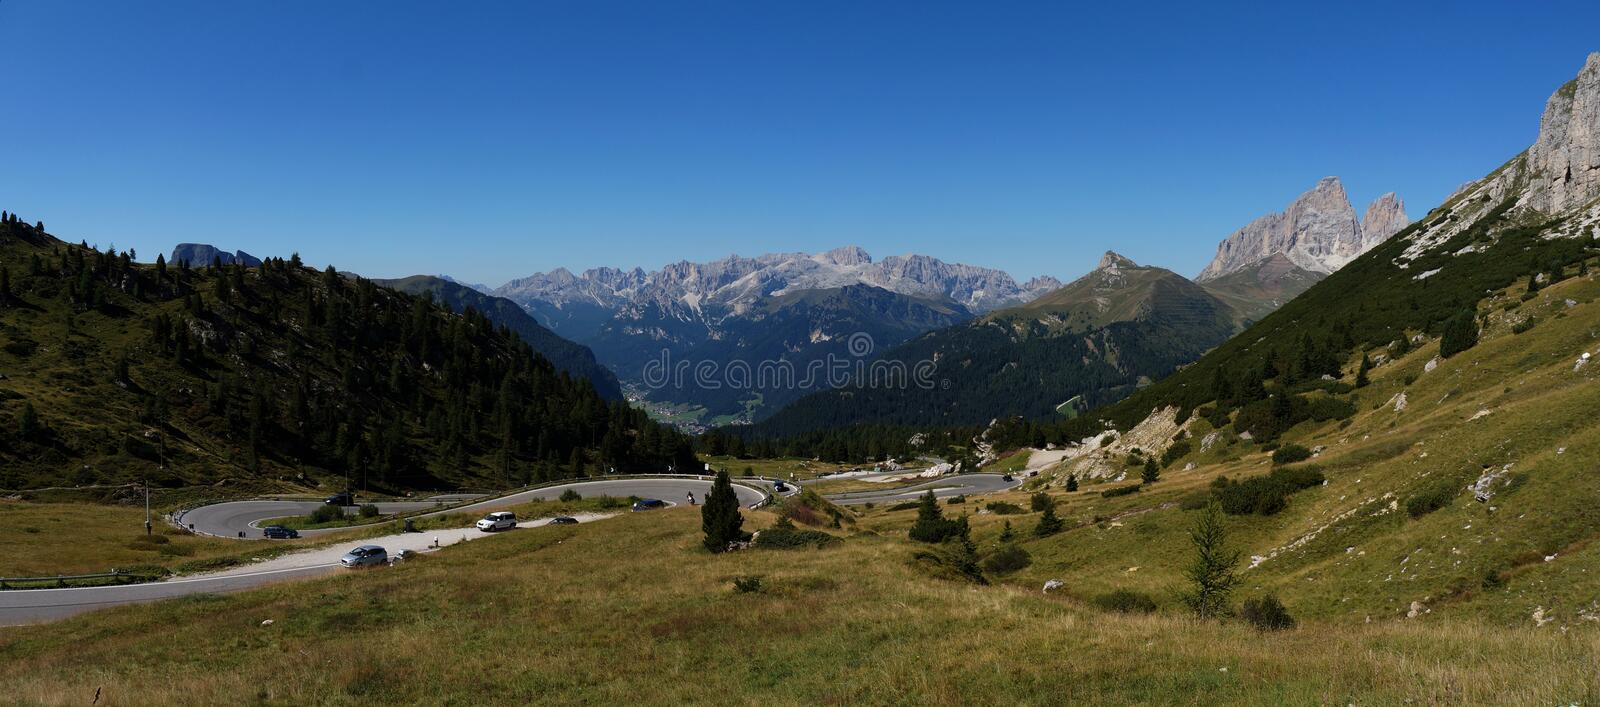 Panoramic view of beautiful dolomite mountain scenery in south tyrol / Pordoi road Pass royalty free stock image